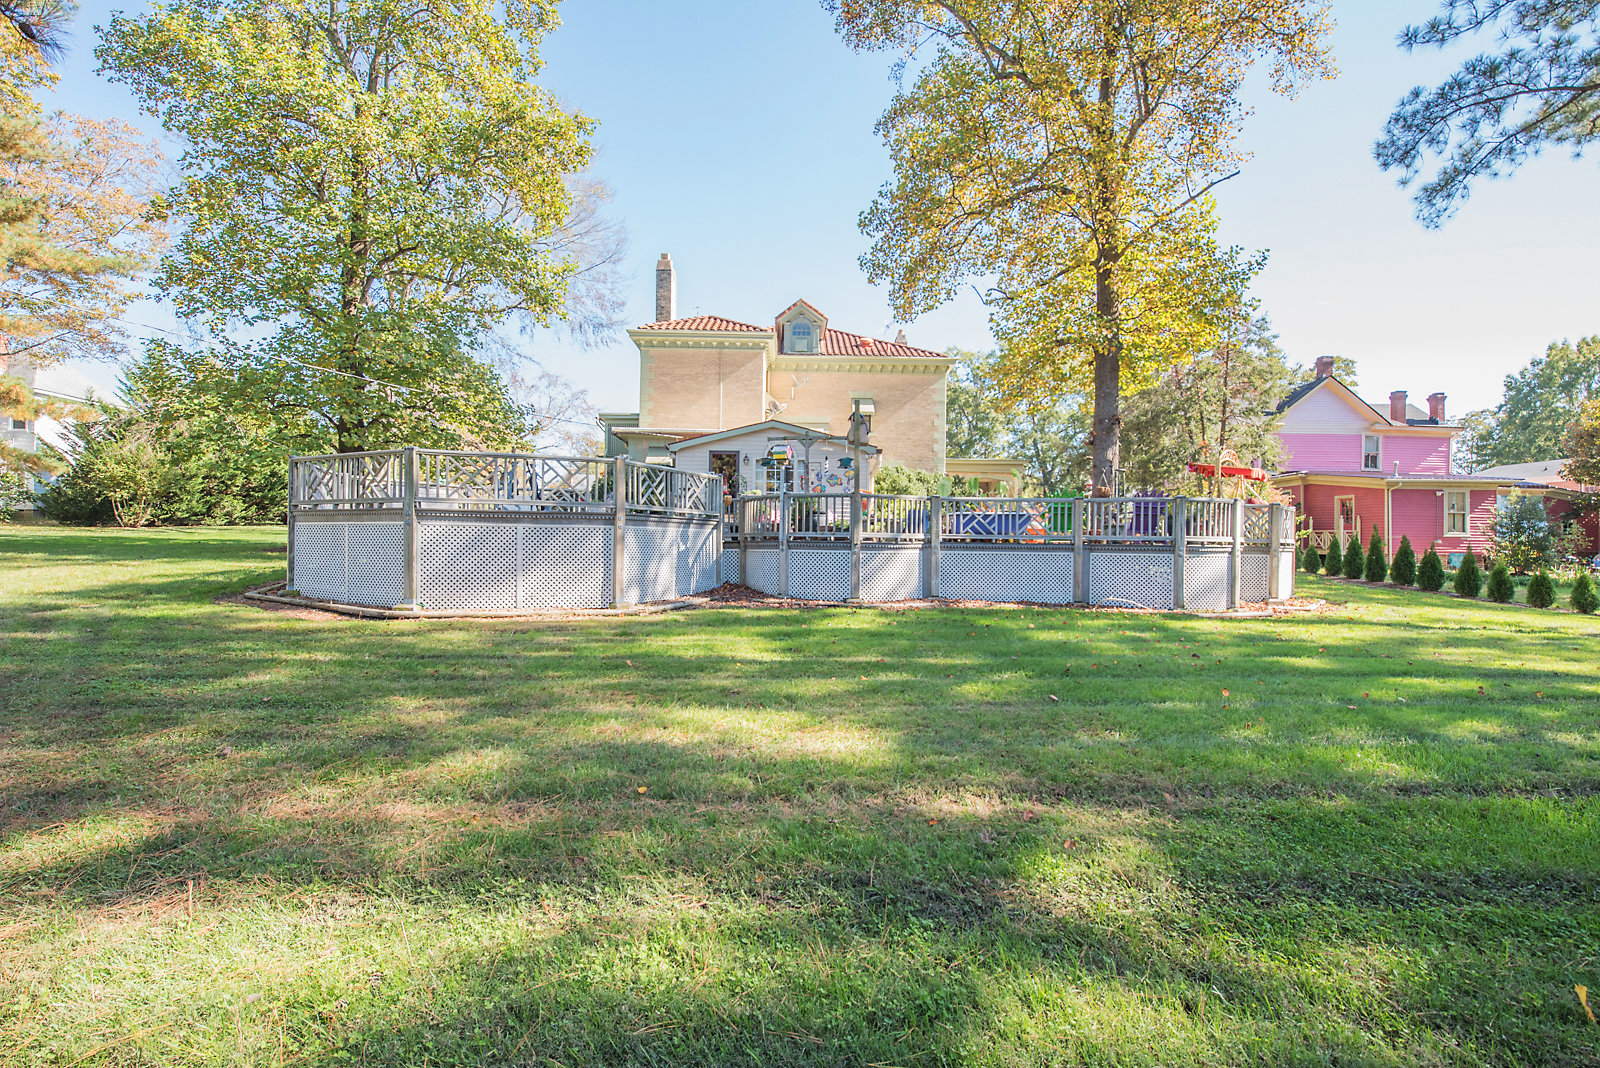 Image for  Majestic 5 BR/4.5 BA Home on 1+ Acres w/Large Detached Garage/Shop in Downtown Blackstone, VA